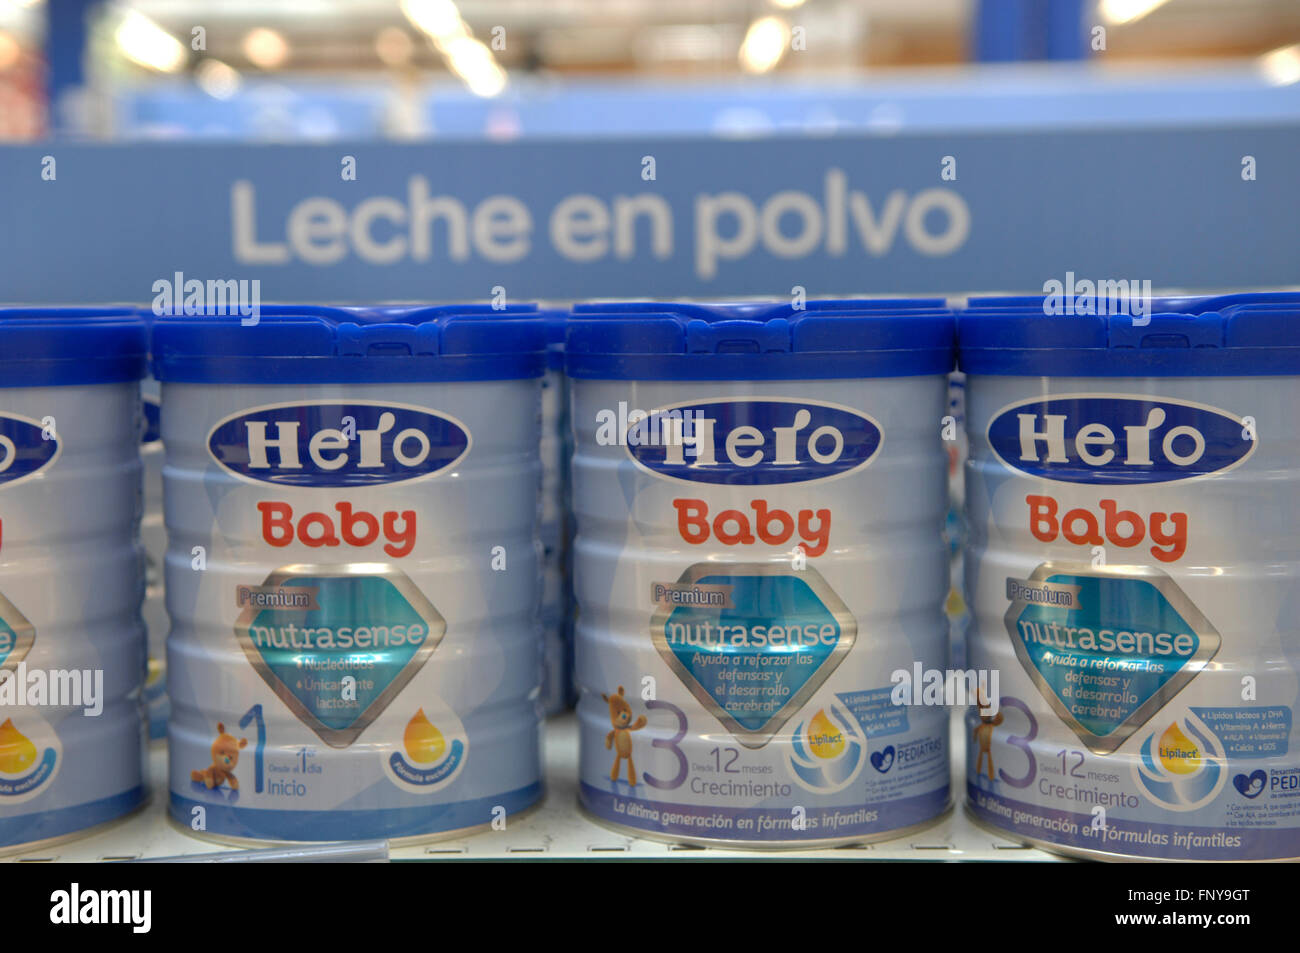 Hei'o Baby Milk Tins on sale in a Carrefour Supermarket in Malaga Spain. - Stock Image